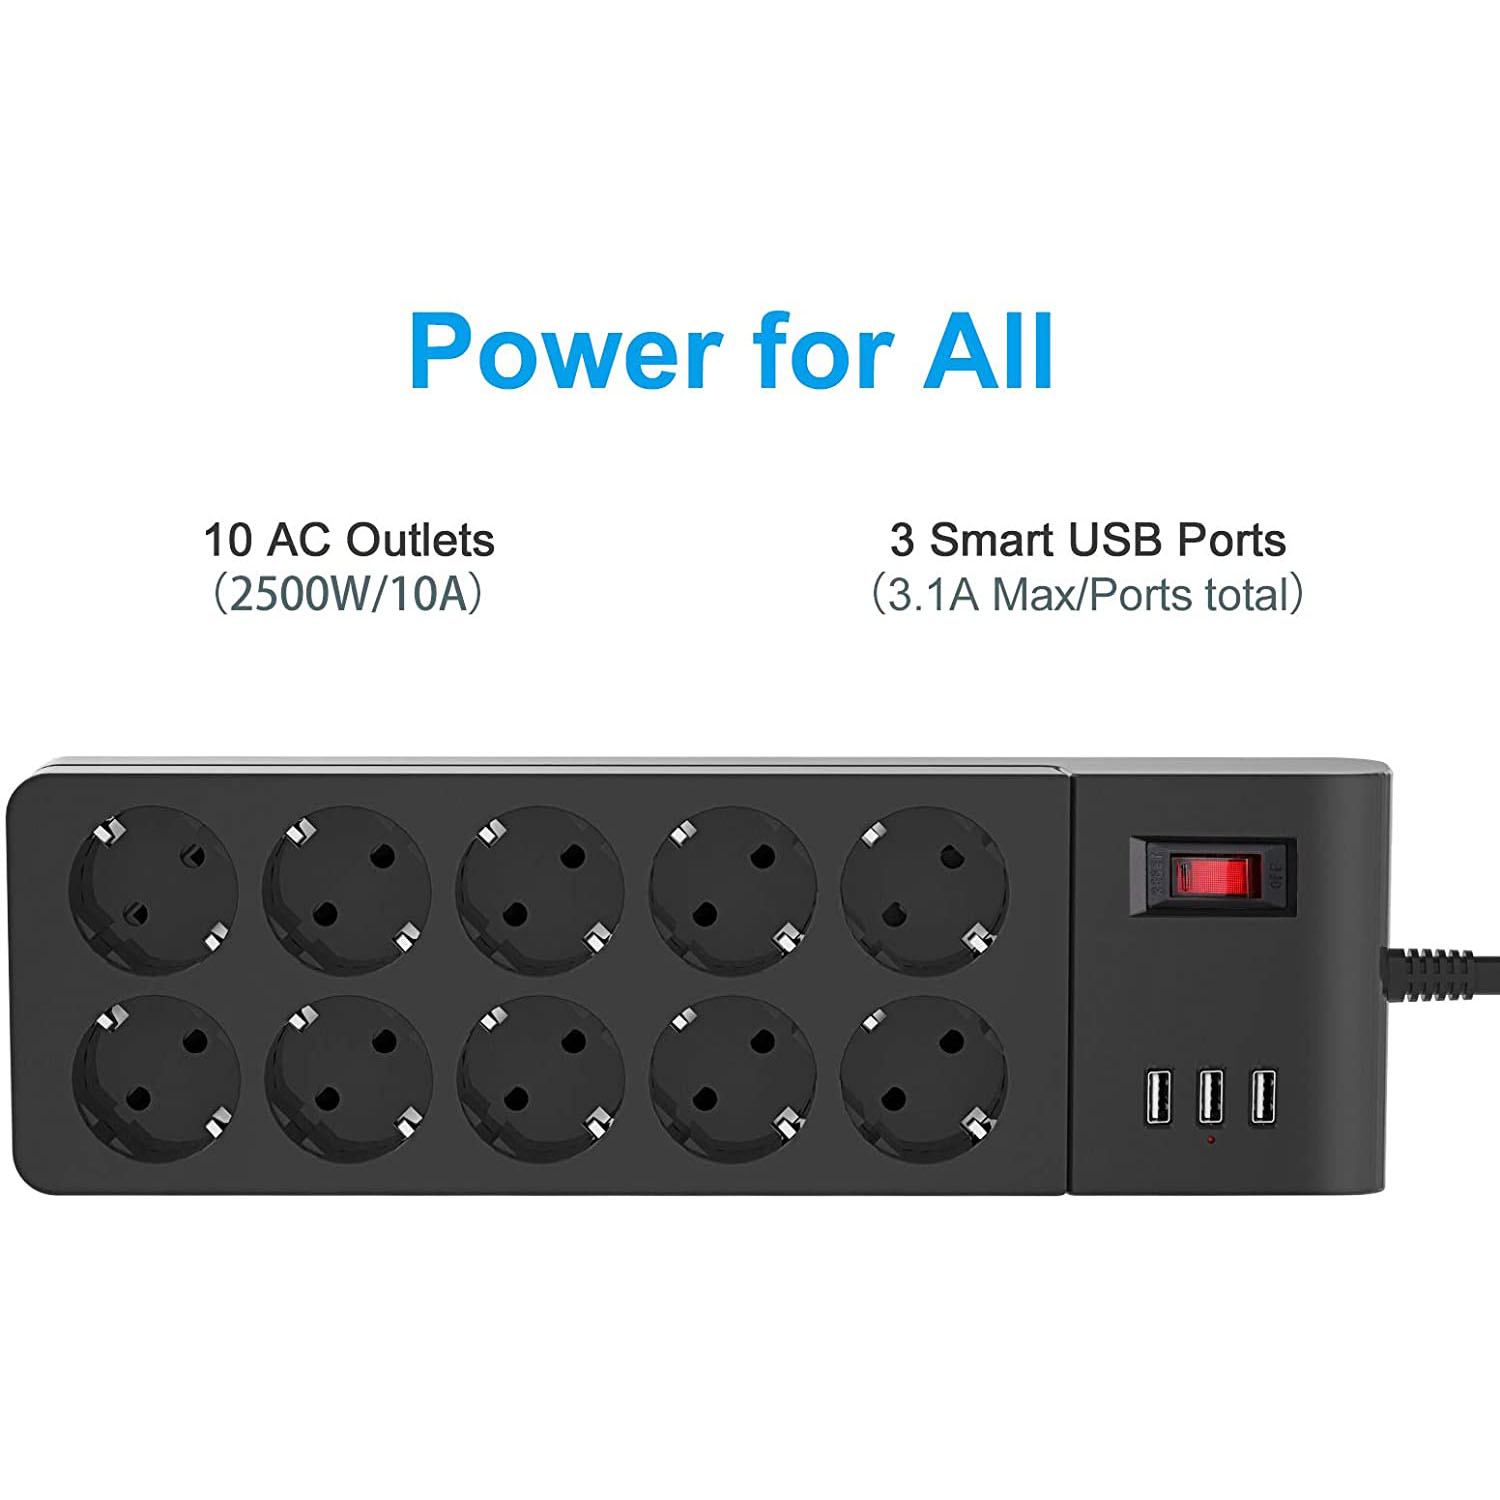 socket strip, multiple socket with 10 slots and 4 USB, EU plug with switch